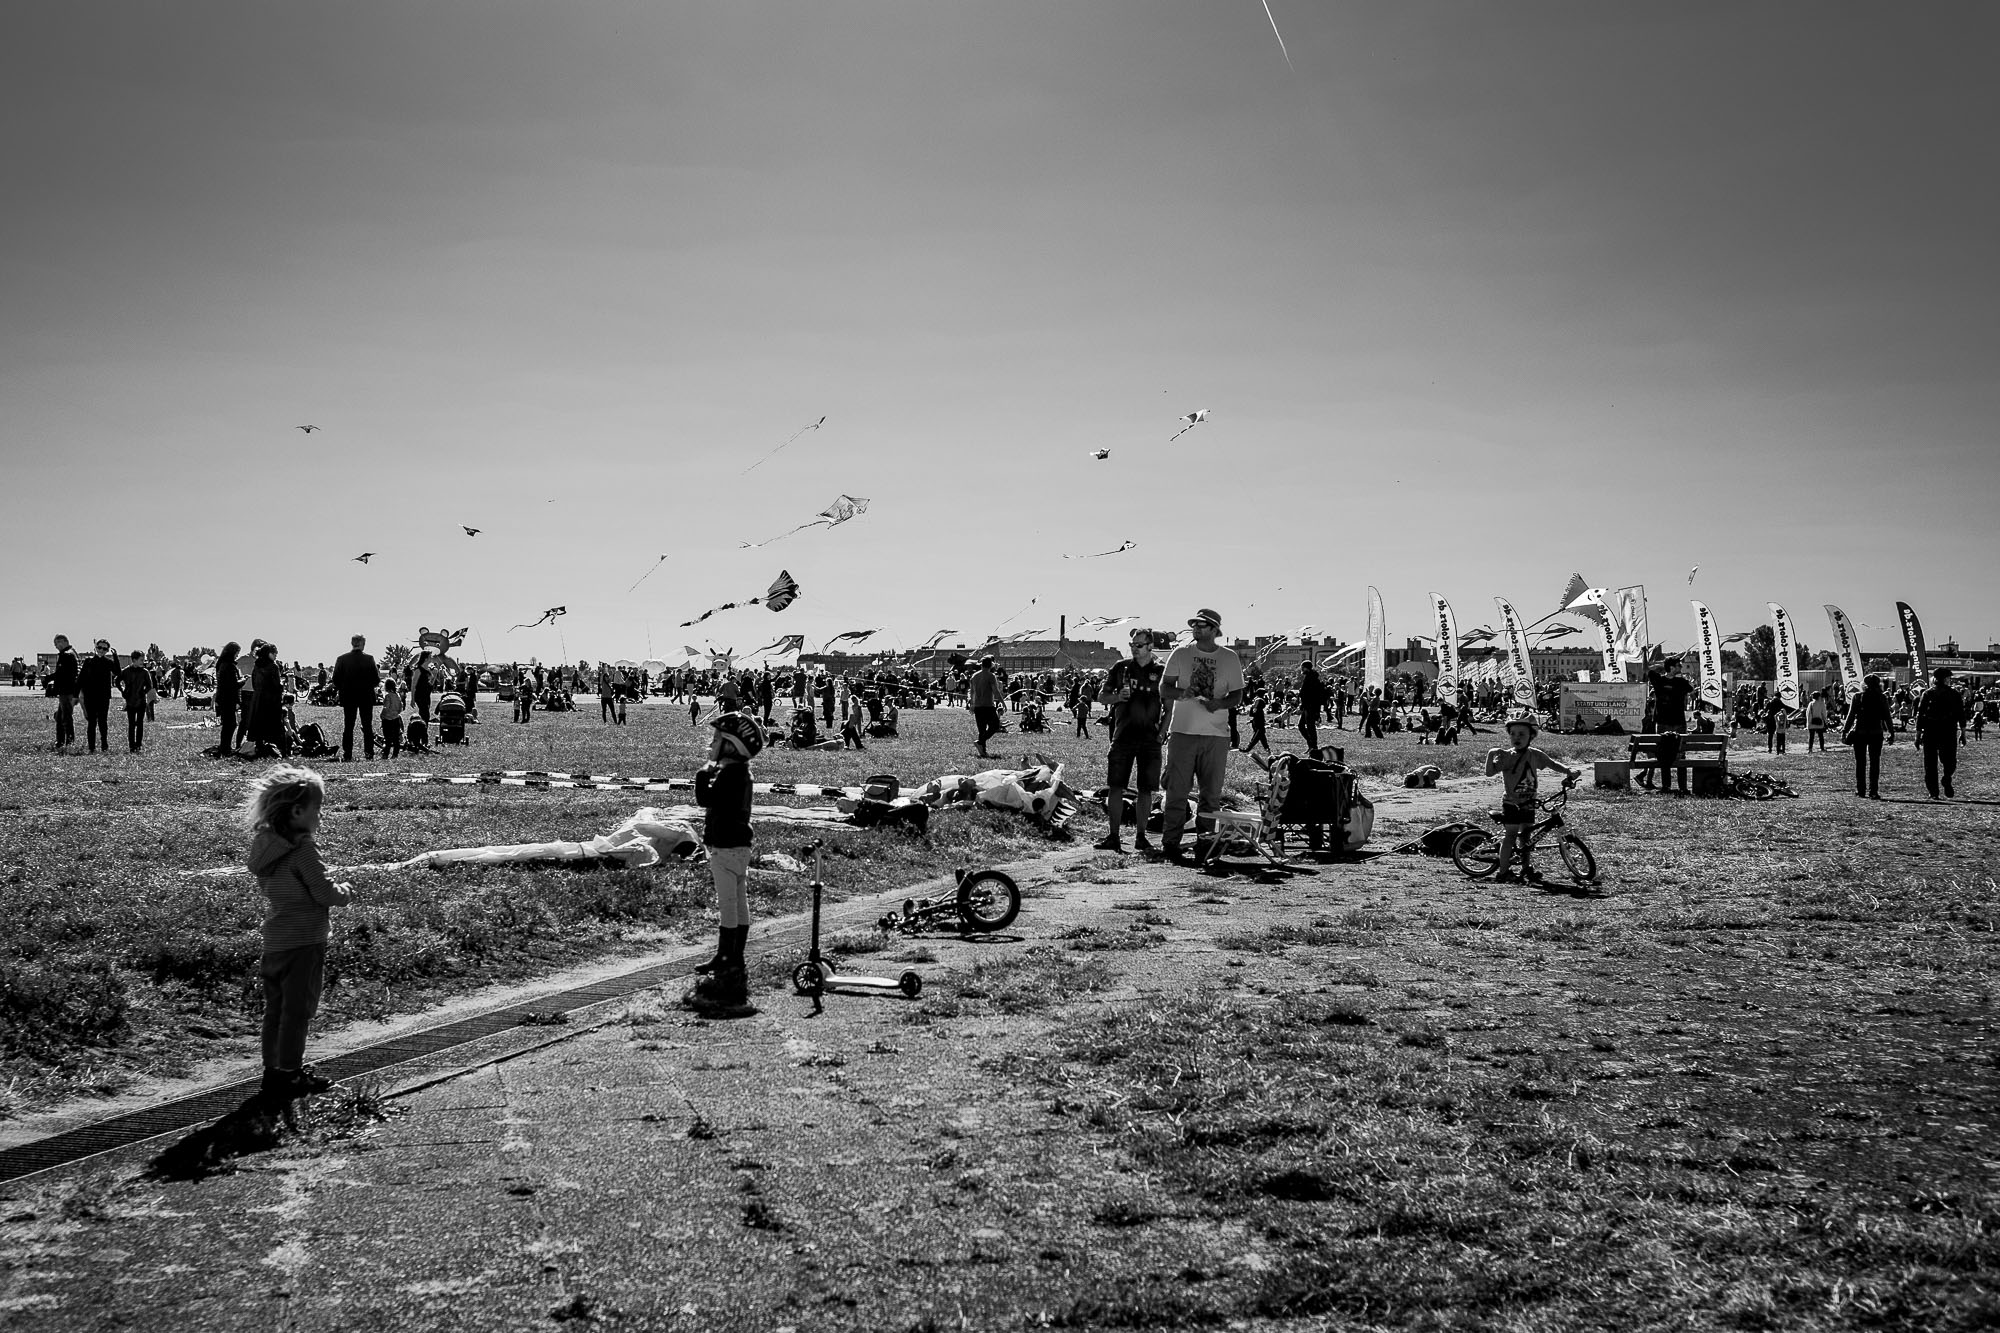 People at the Templehof Park watch a large number of kites in the sky